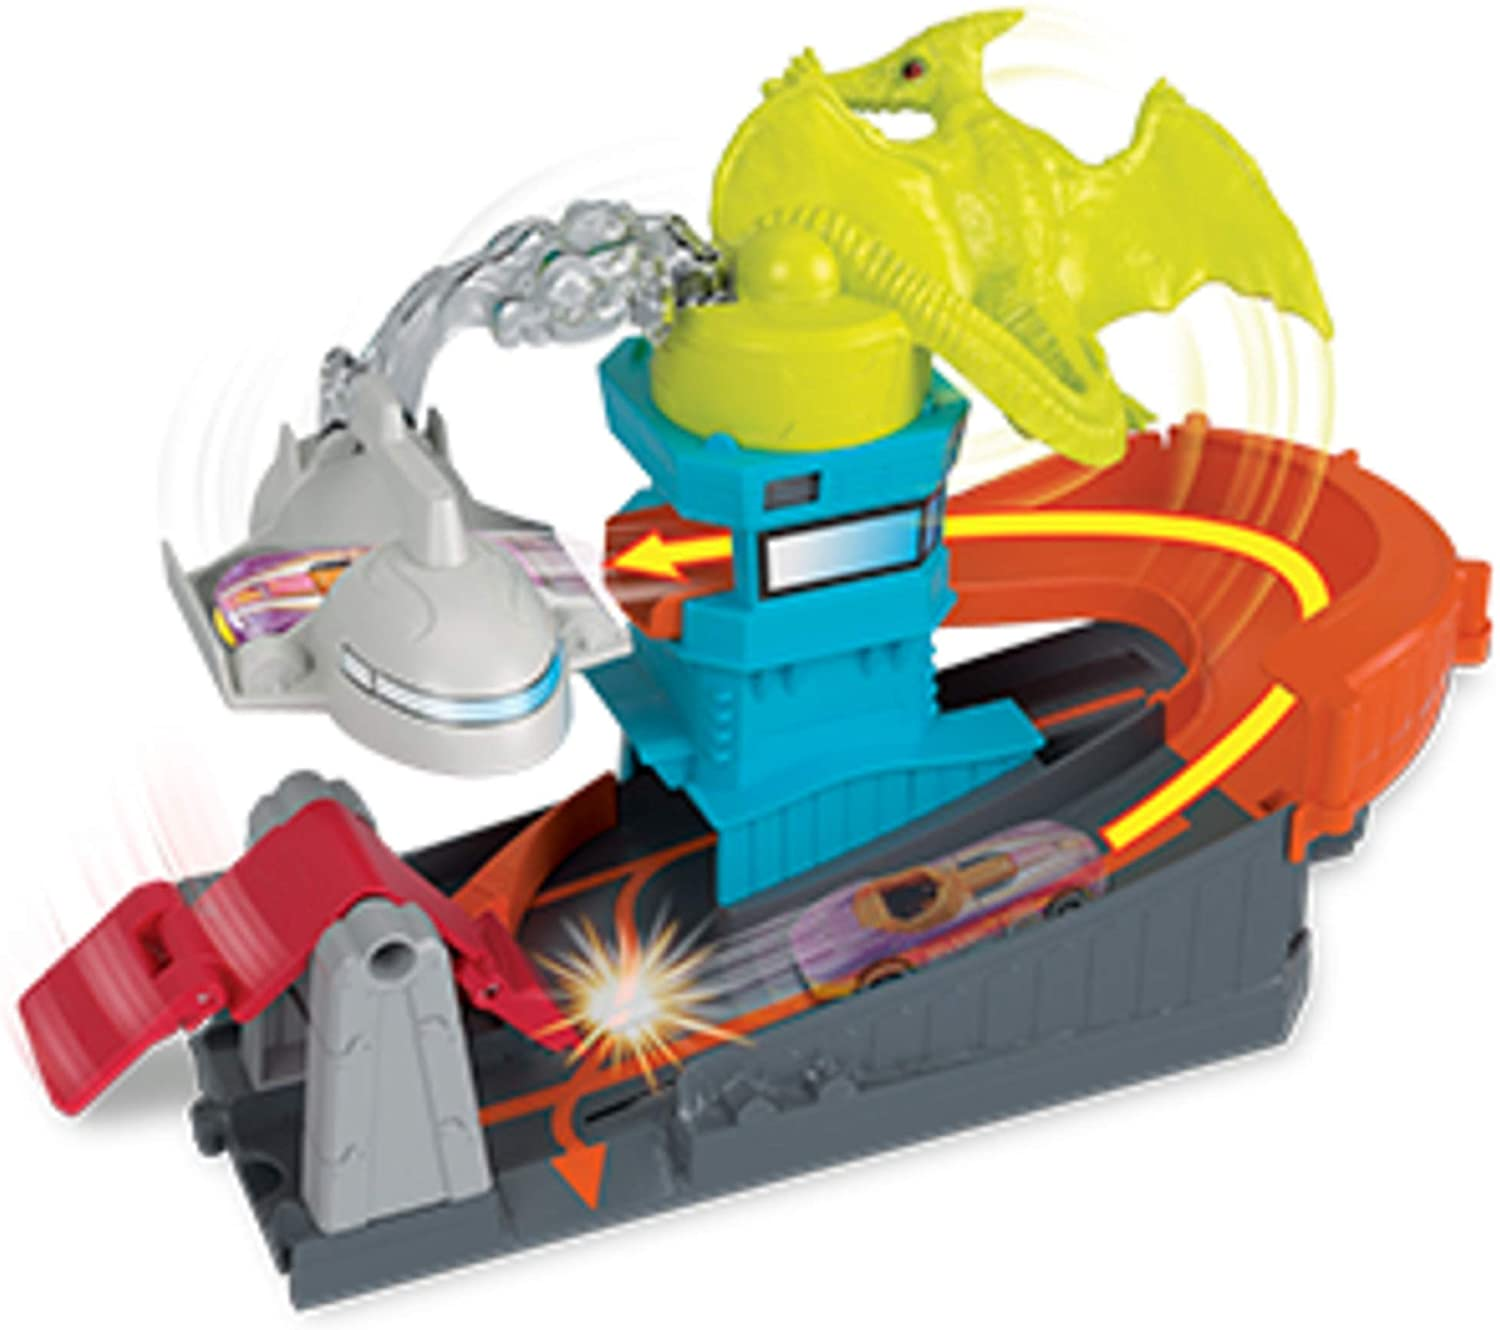 Hot Wheels Ptero Port Attack, playset